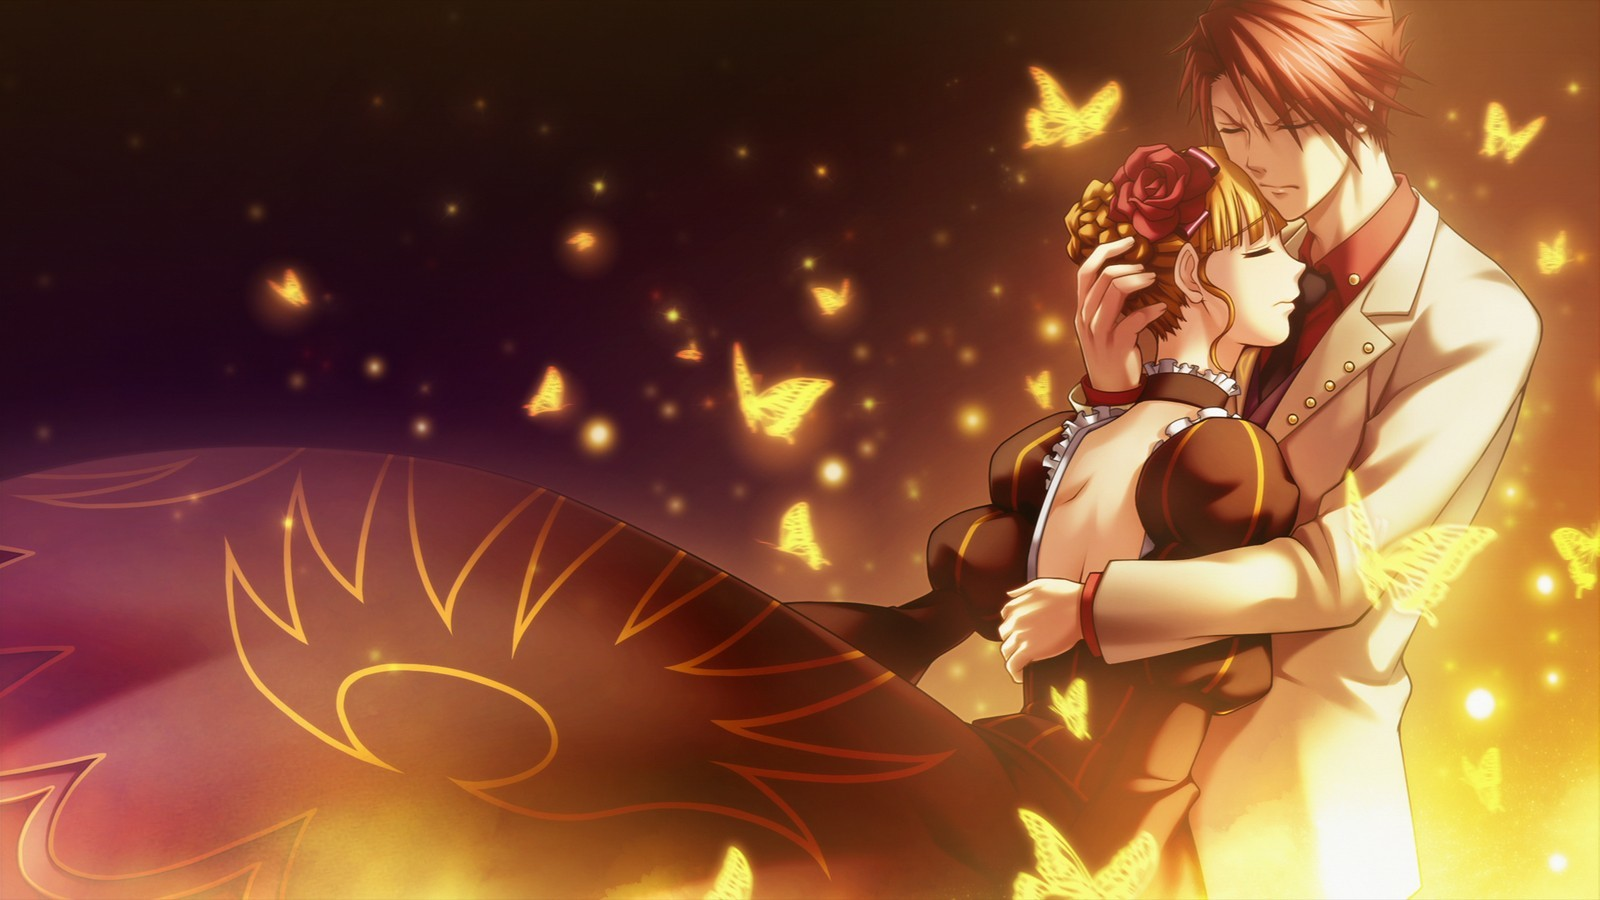 [Umineko] Pairings / Crack pairings  Umineko_no_naku_koro_ni_beatrice_ushiromiya_battler_desktop_1600x900_hd-wallpaper-1121927